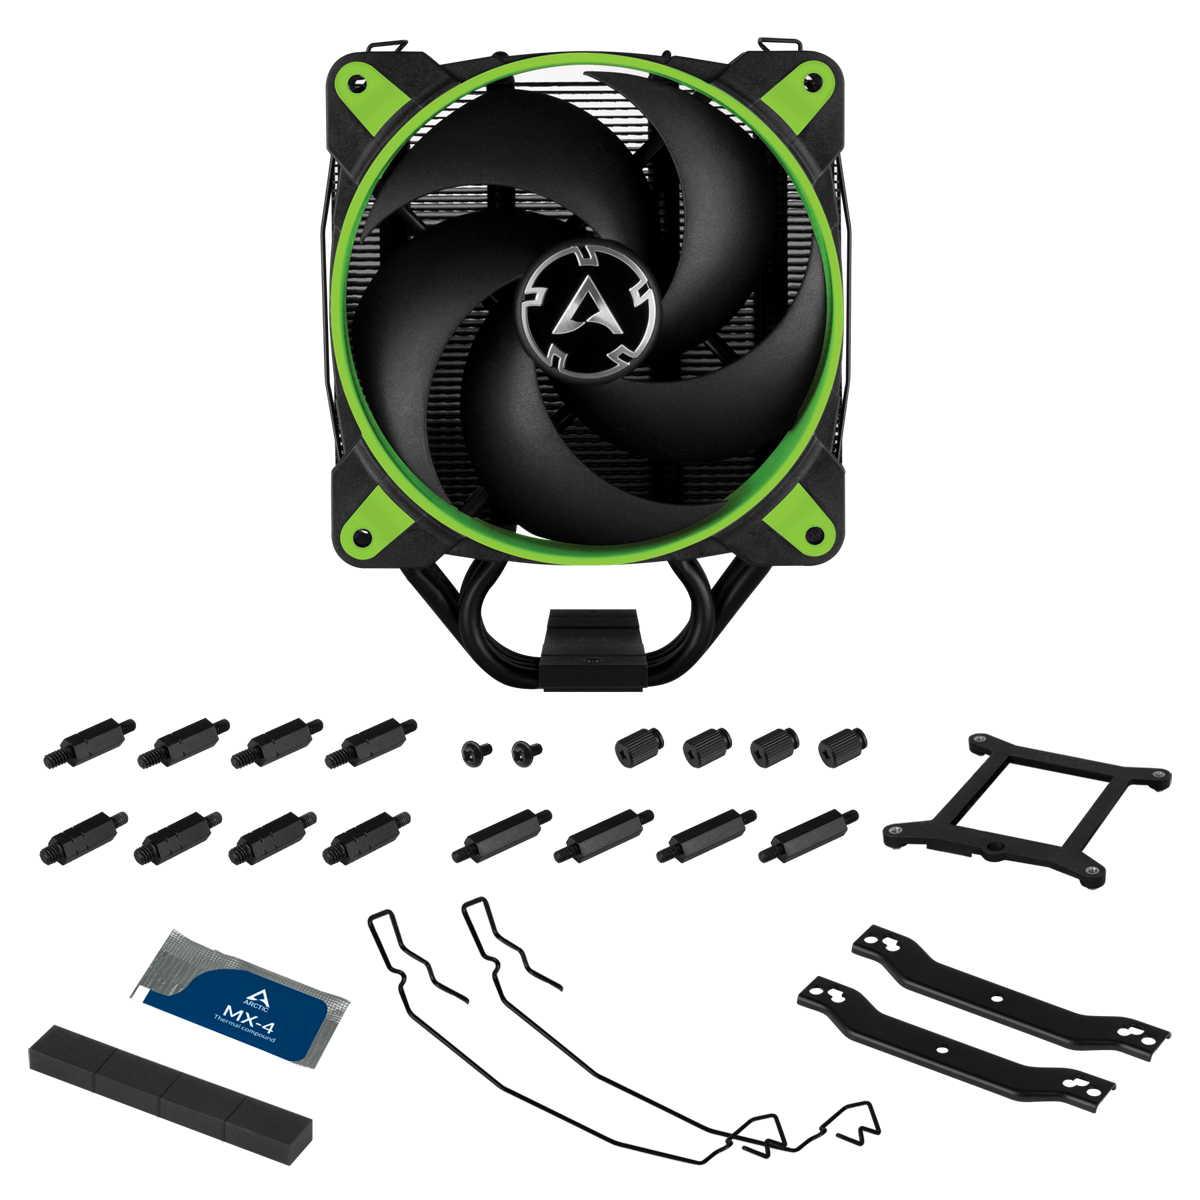 Tower CPU Cooler with BioniX P-Fan ARCTIC Freezer 34 eSports (Green) Package Contents